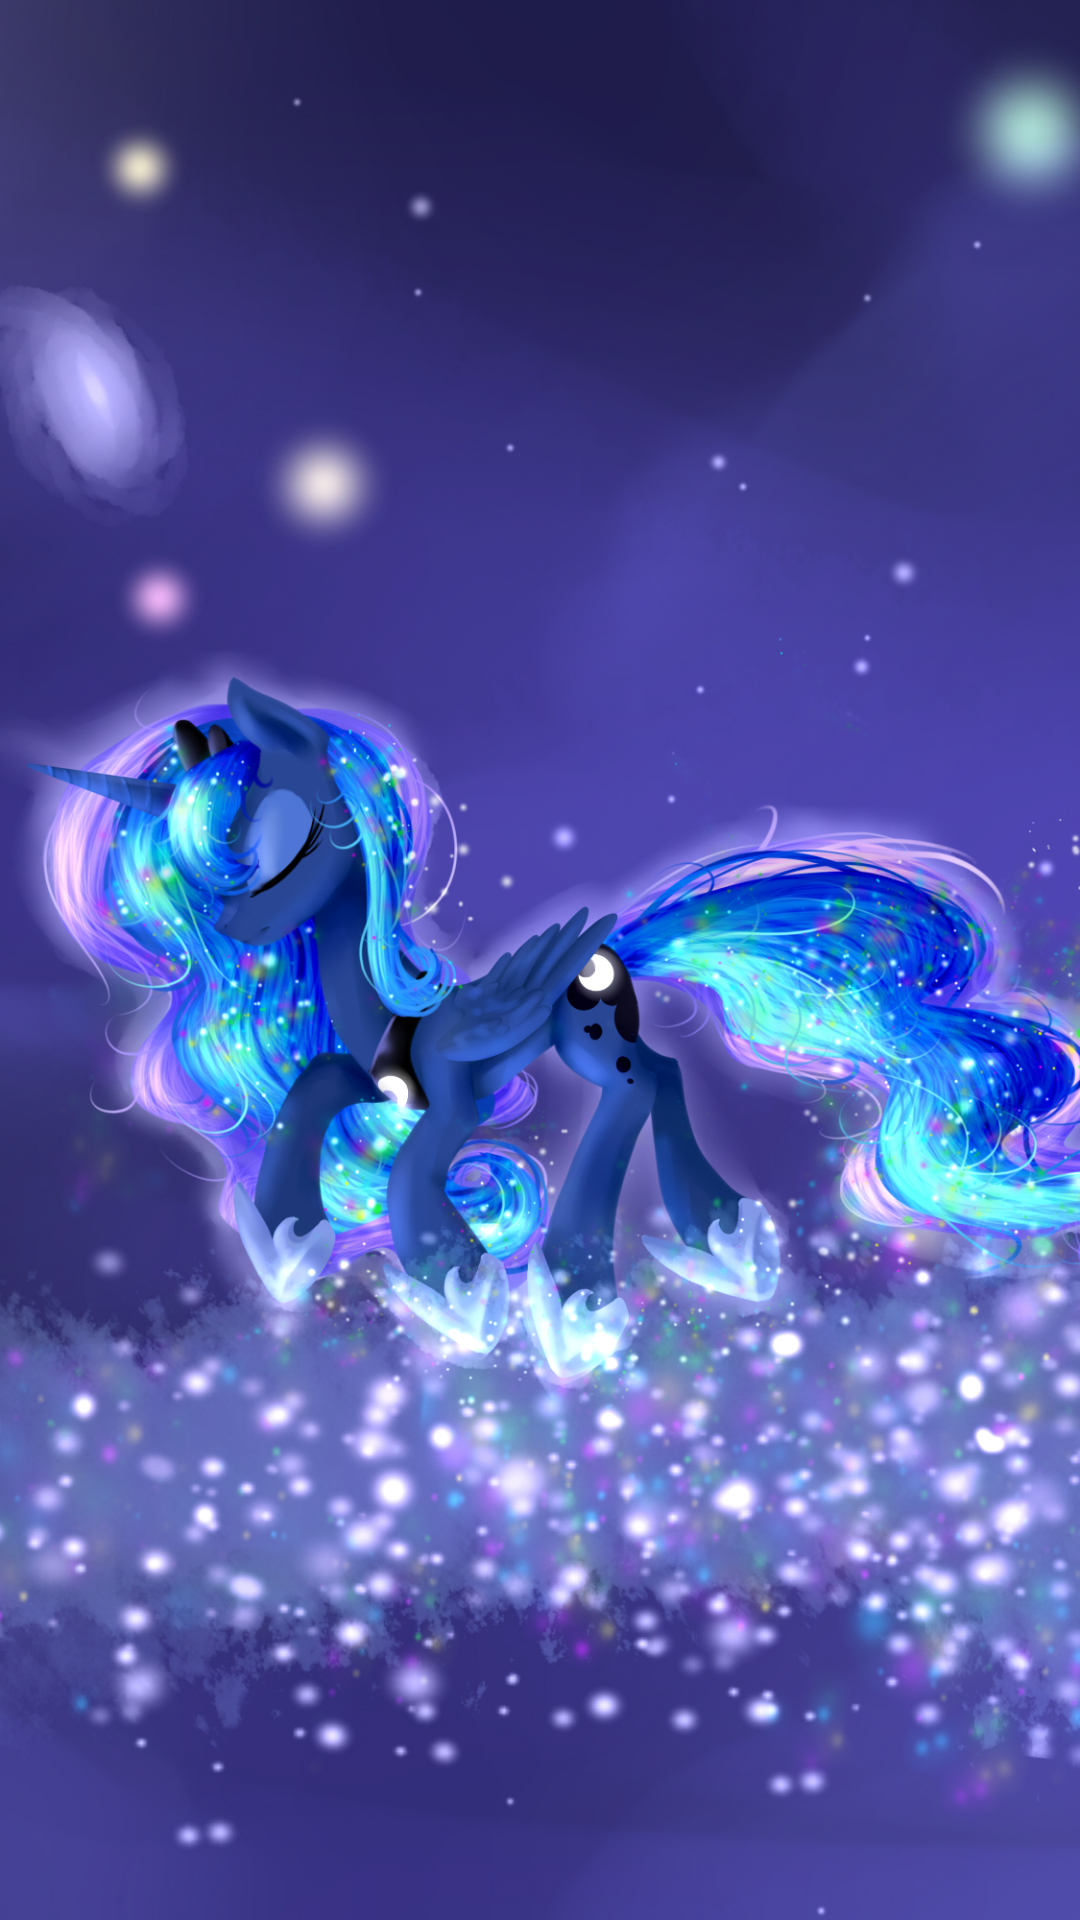 mlp iphone wallpaper luna - davidovic